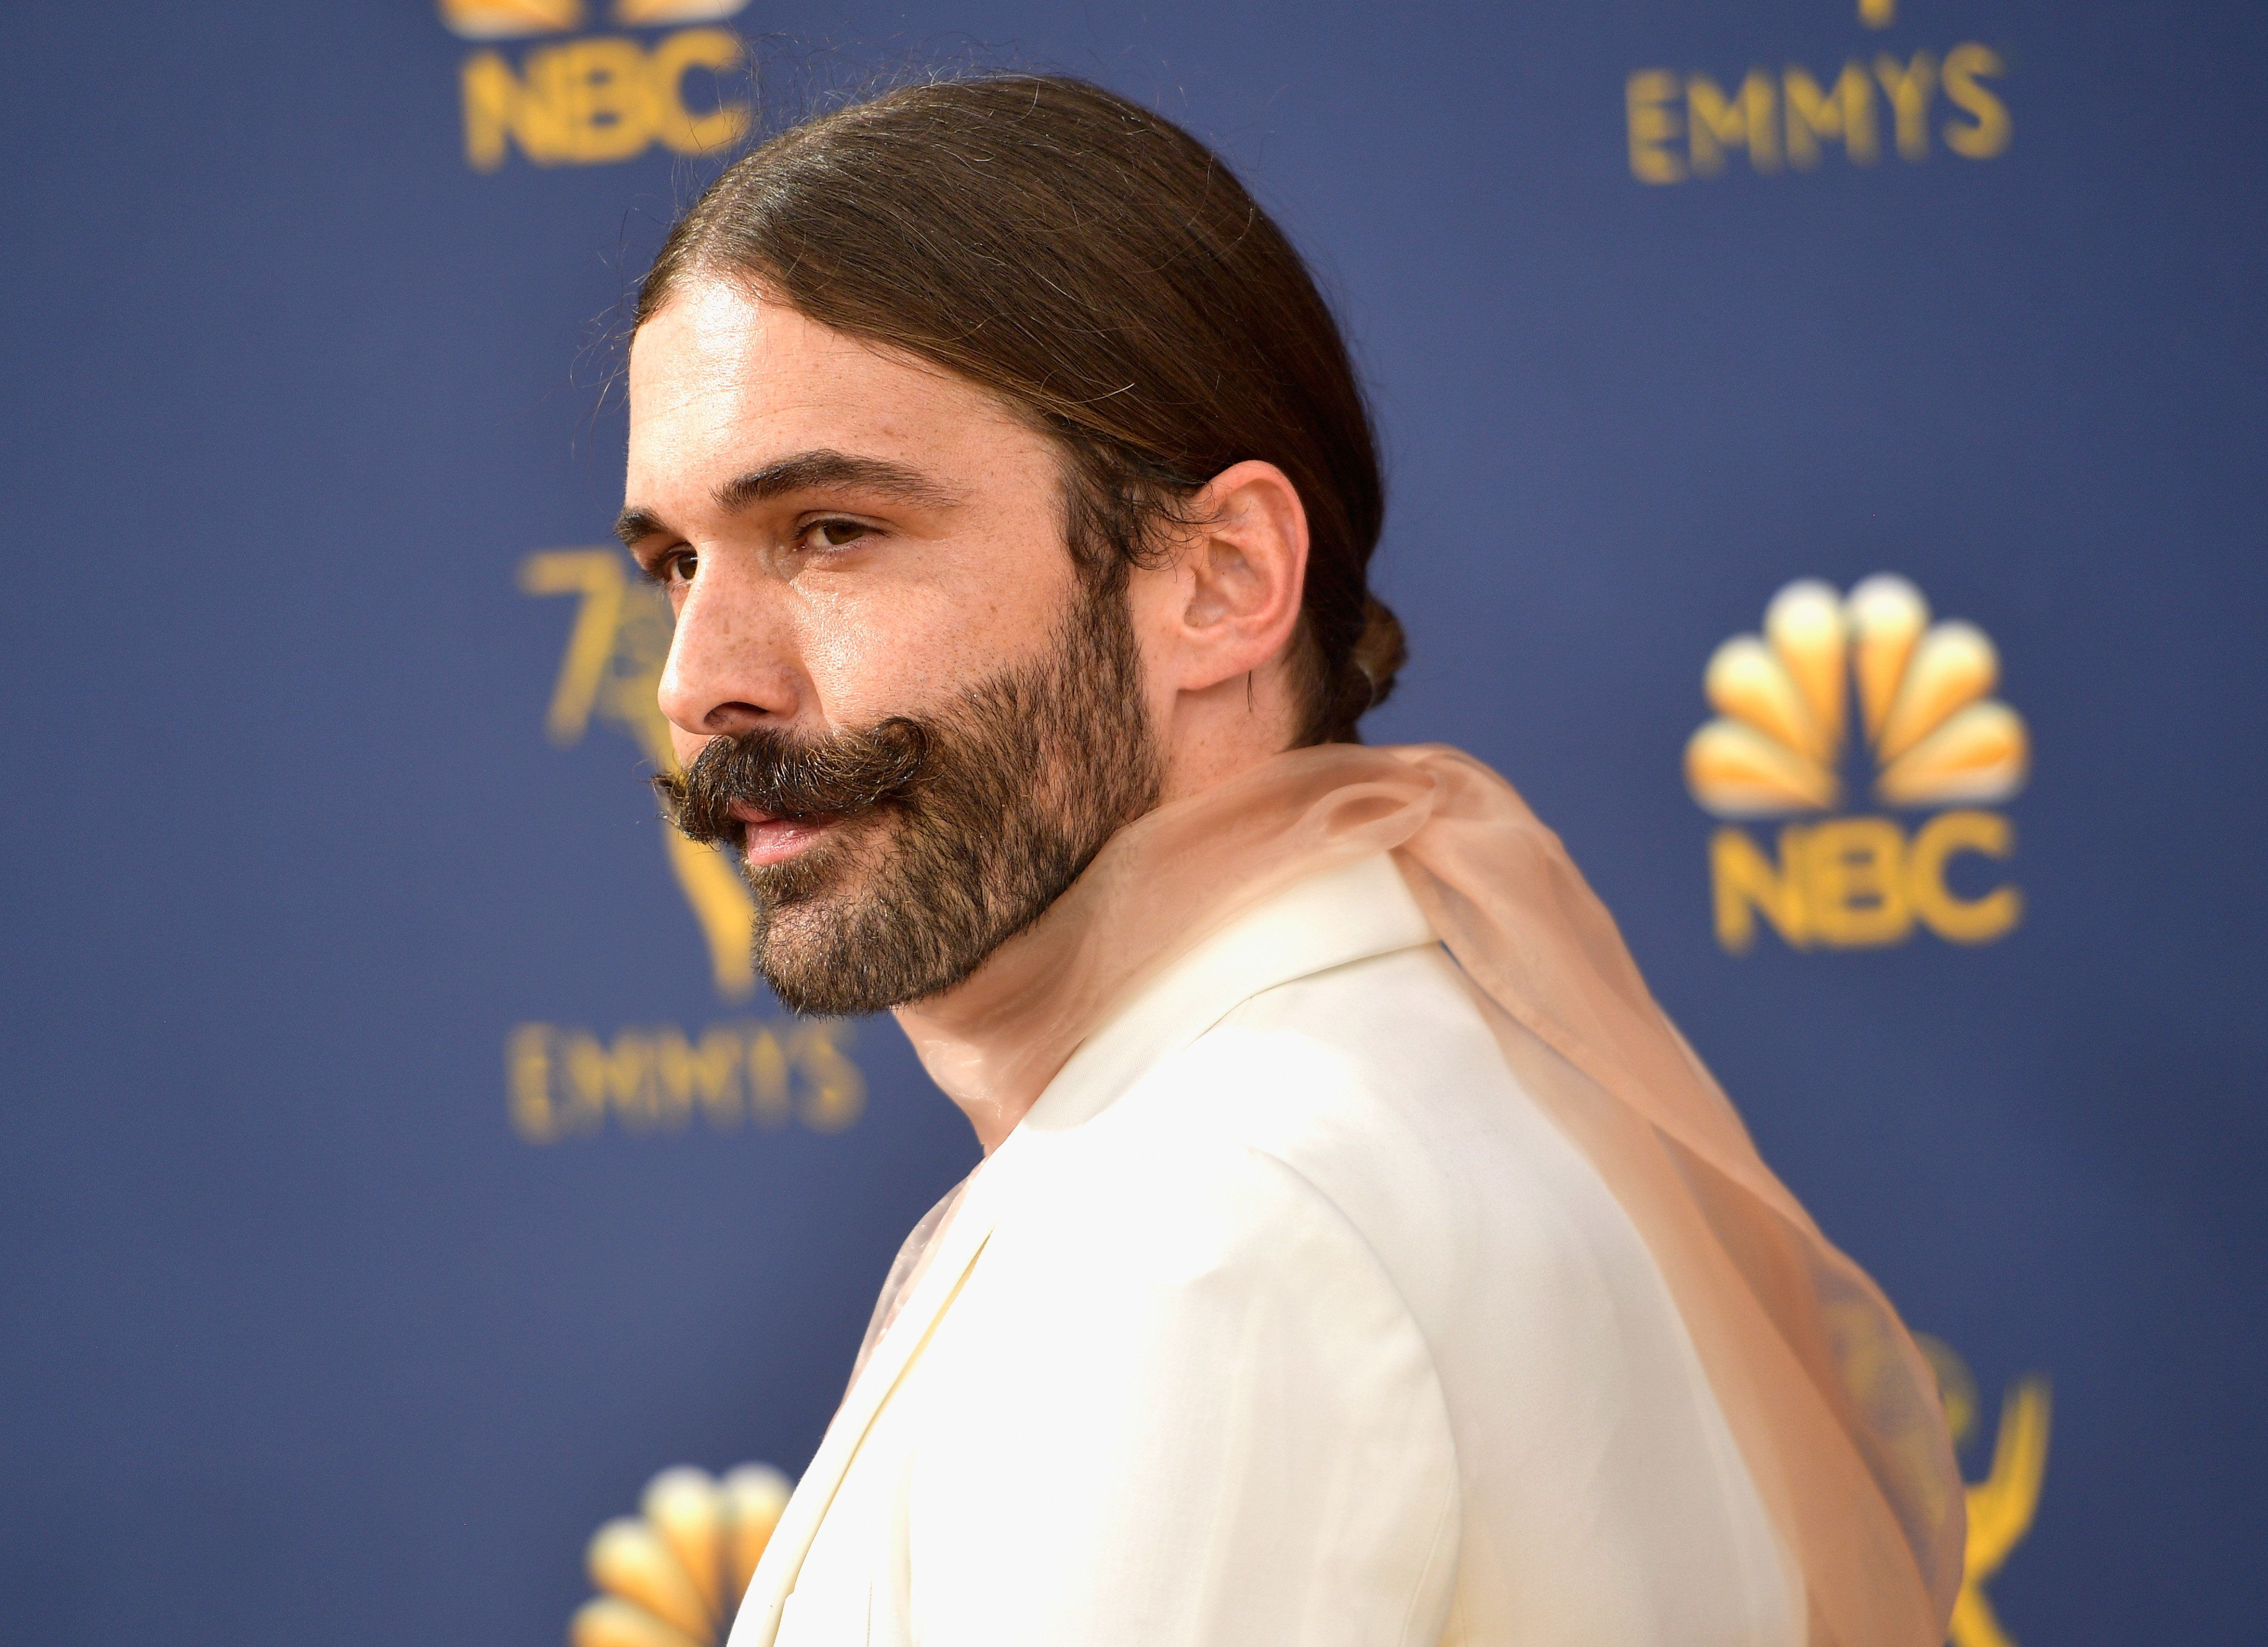 LOS ANGELES, CA - SEPTEMBER 17:  Jonathan Van Ness attends the 70th Emmy Awards at Microsoft Theater on September 17, 2018 in Los Angeles, California.  (Photo by Matt Winkelmeyer/Getty Images)